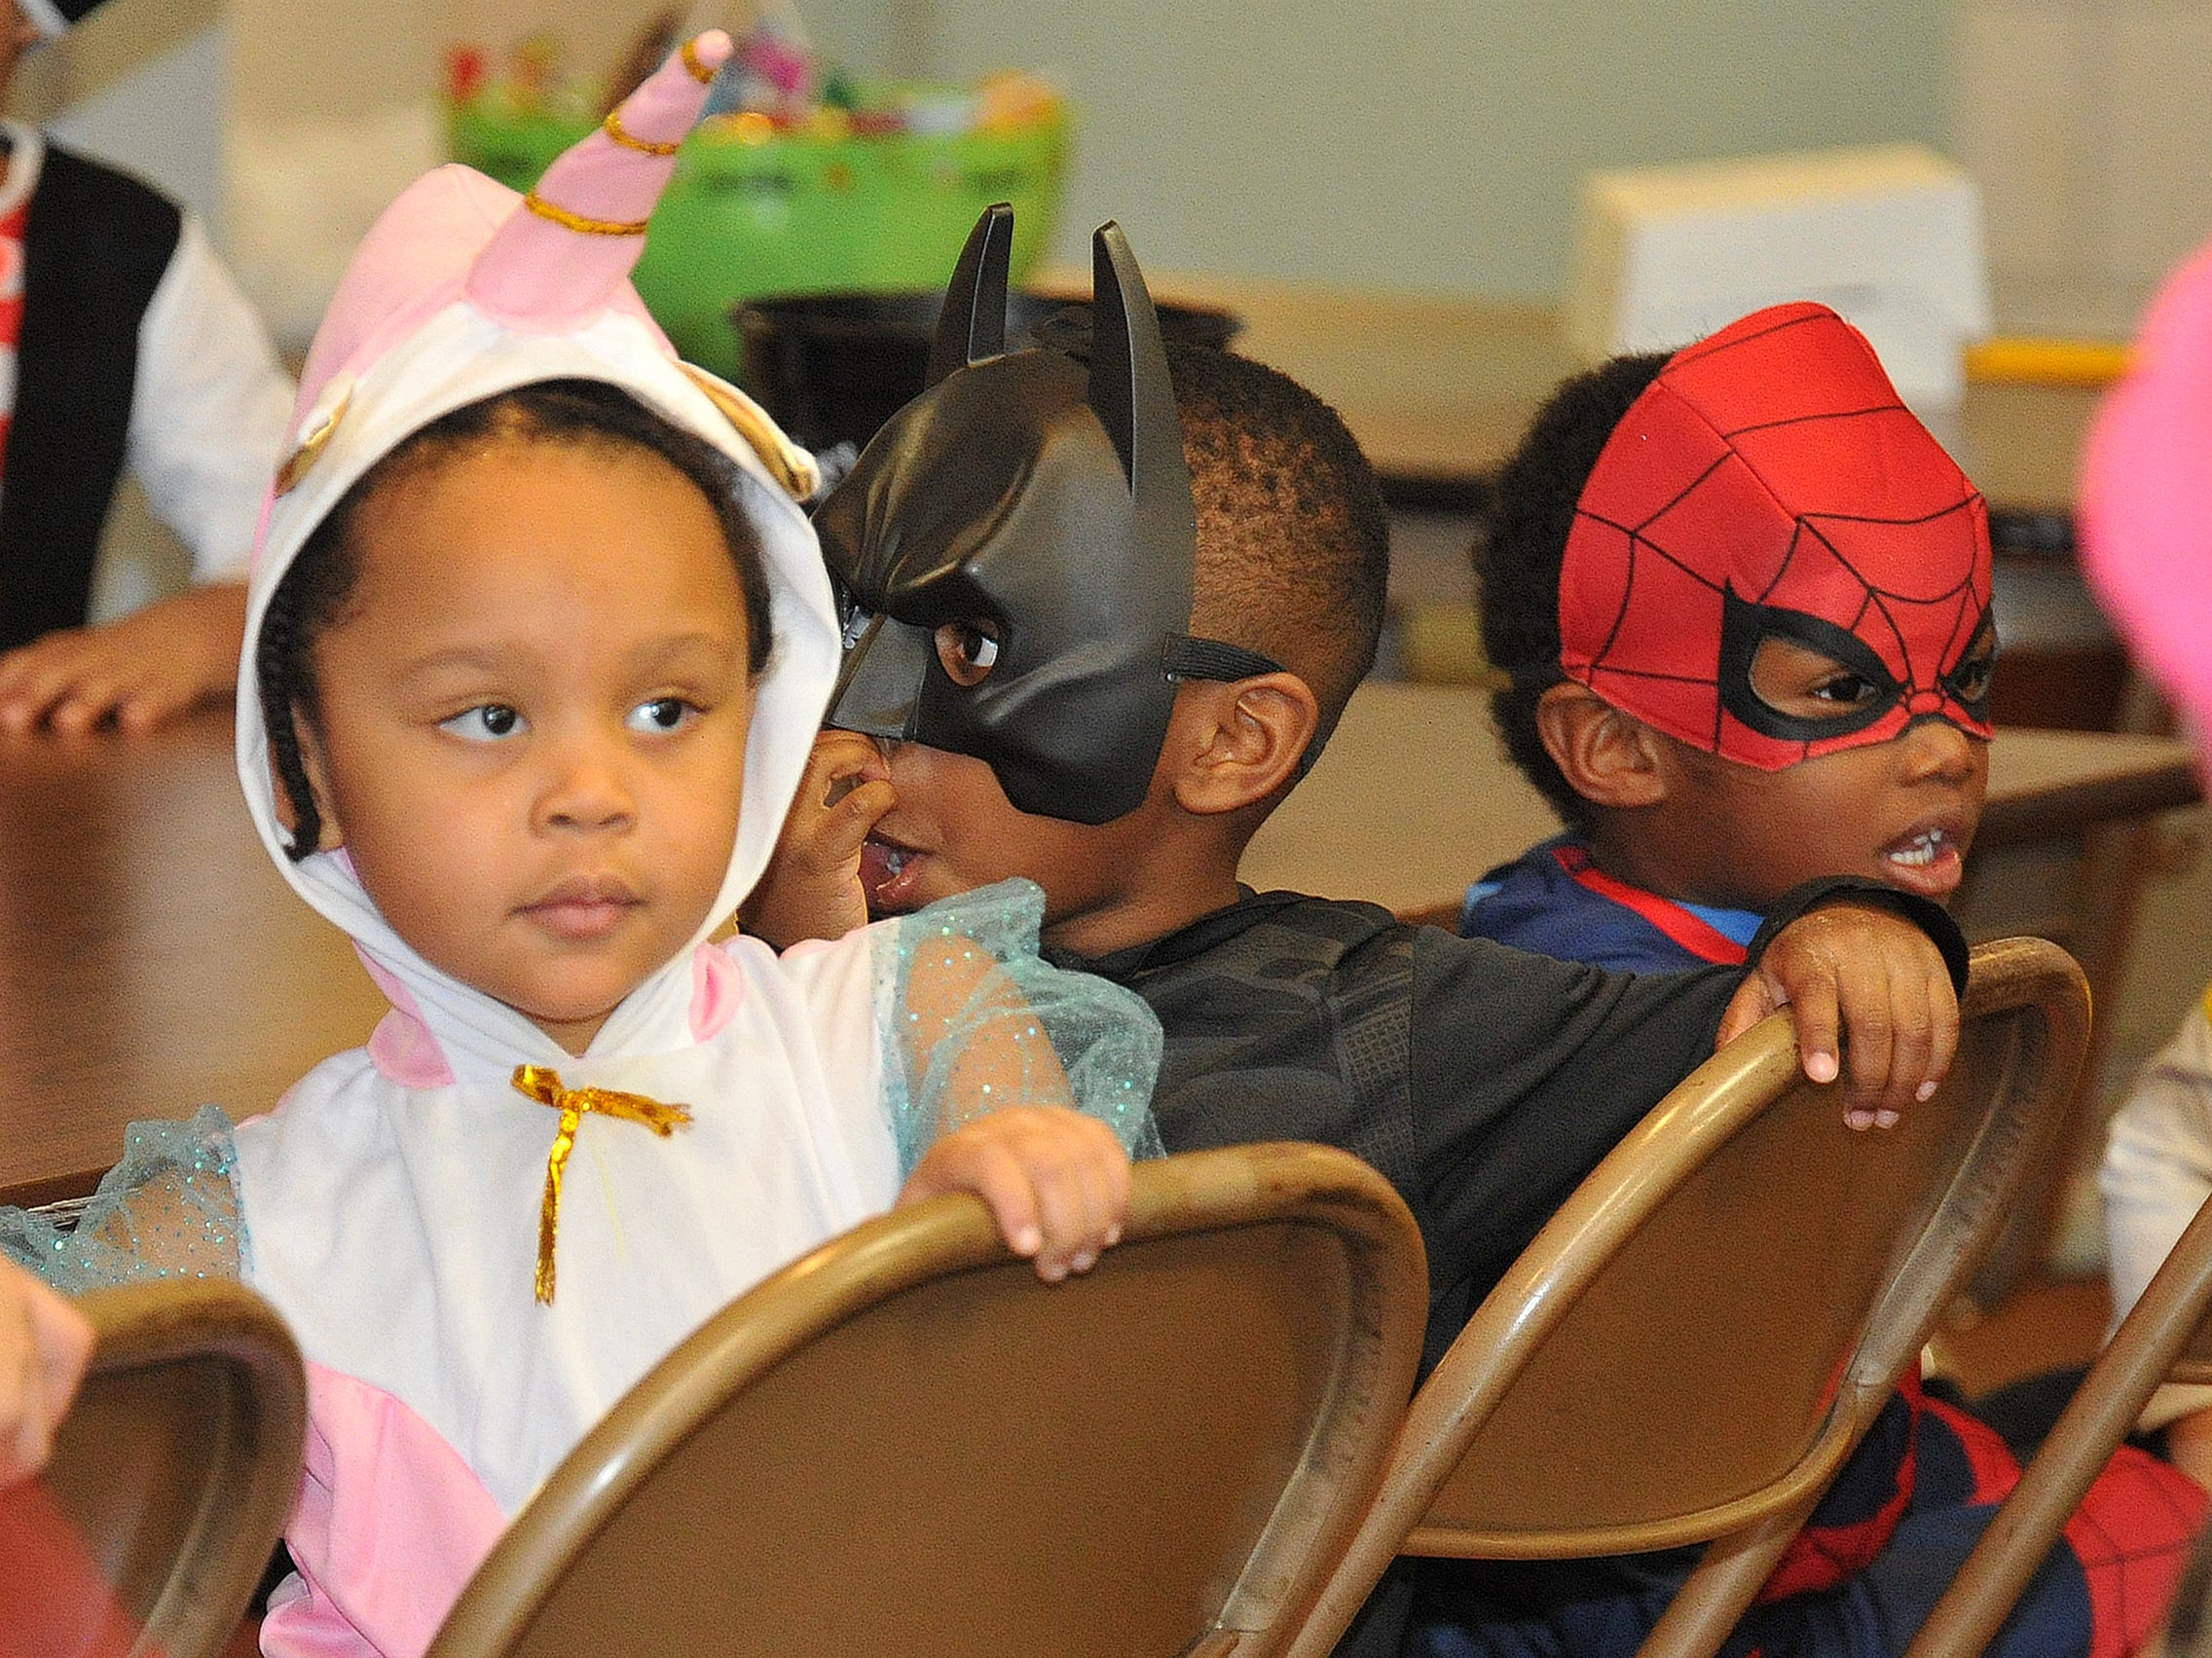 2-year-old Malaya King, left, was dressed as a pink unicorn during the Martin Luther King Center's Halloween costume contest held Wednesday afternoon.